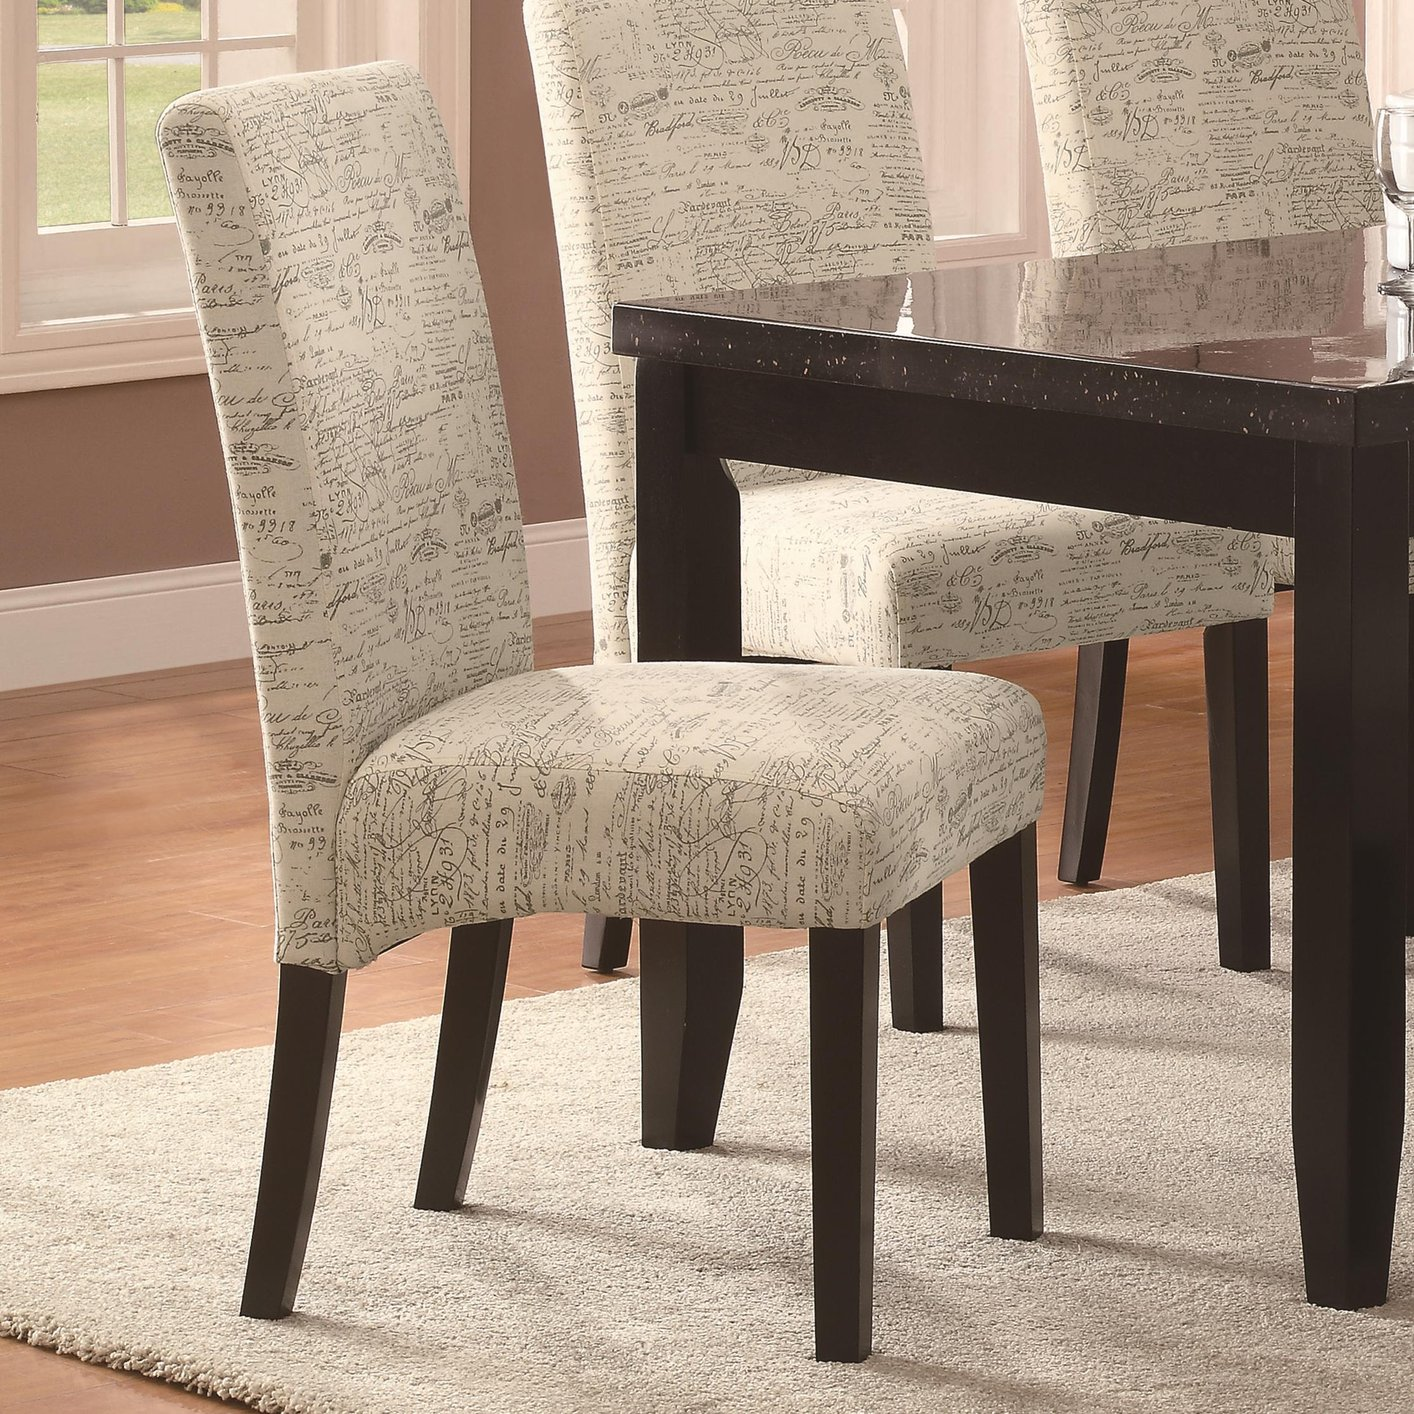 White Fabric Dining Chair  StealASofa Furniture Outlet